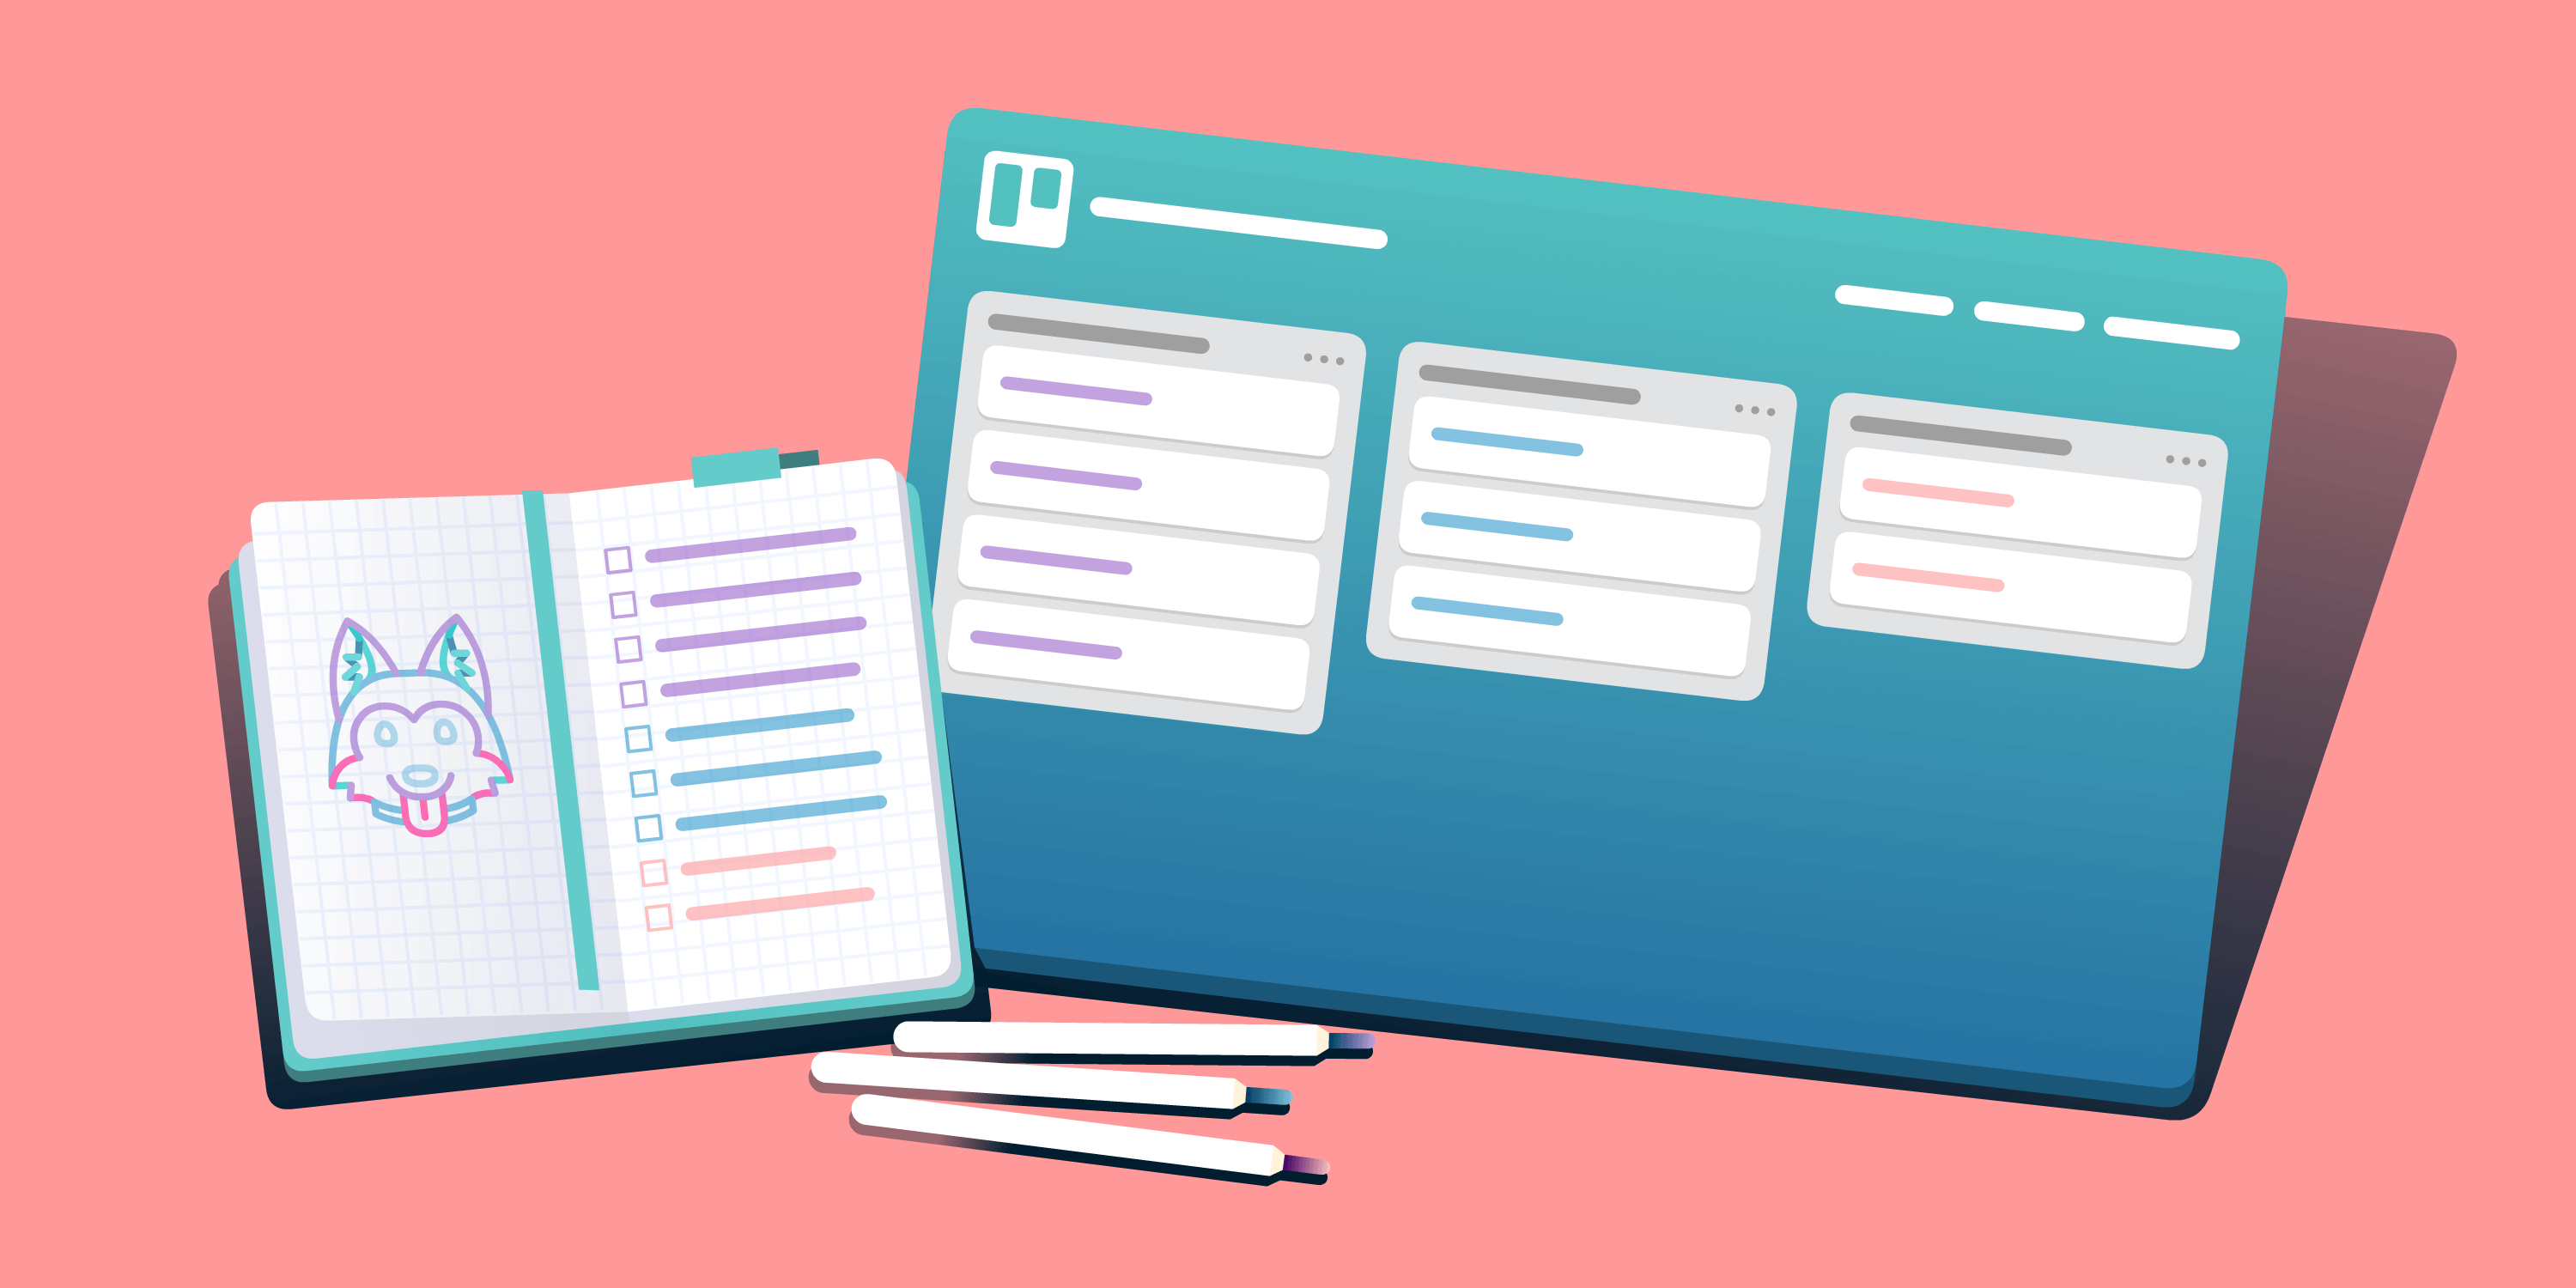 2017-07-31_How-To-Create-A-Digital-Bullet-Journal-In-Trello_v02_r01.png